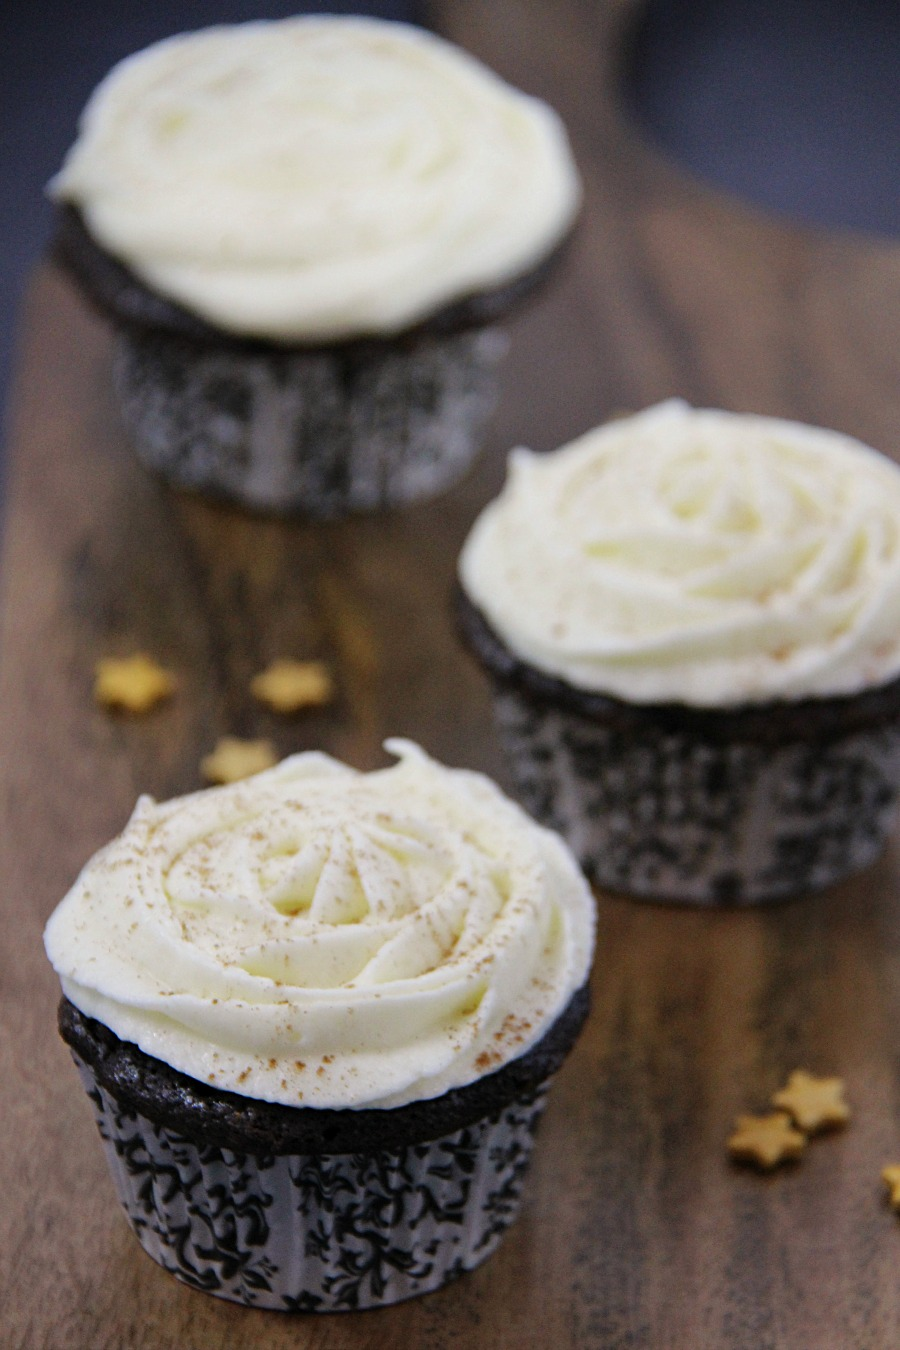 Chocolate Cupcakes with Eggnog Buttercream Frosting recipe from Family Food and Travel